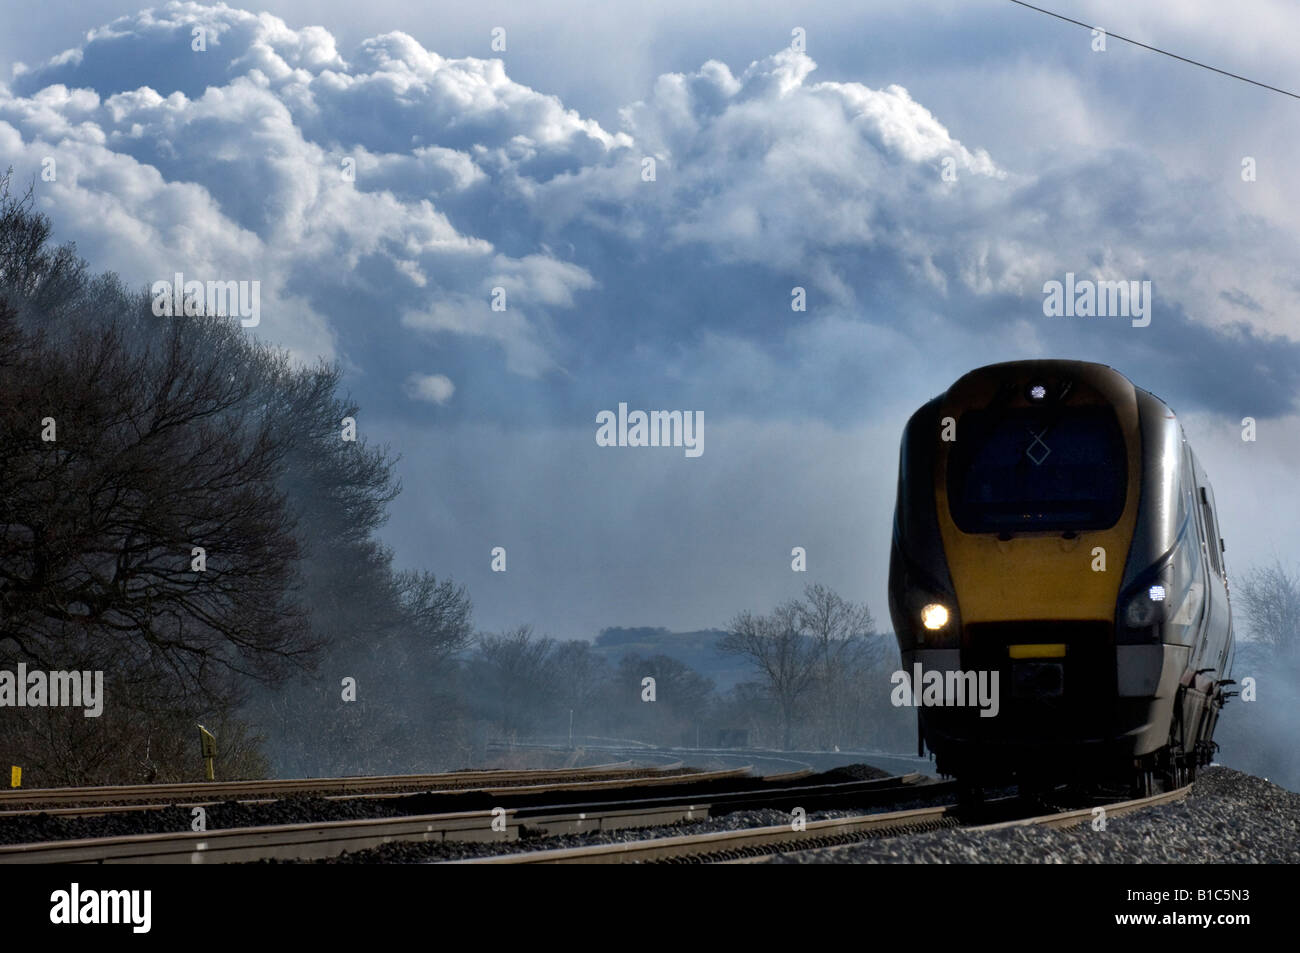 An East Midlands Trains Midland Mainline Class 222 Meridian train at Ratcliffe on Soar Nottinghamshire - Stock Image